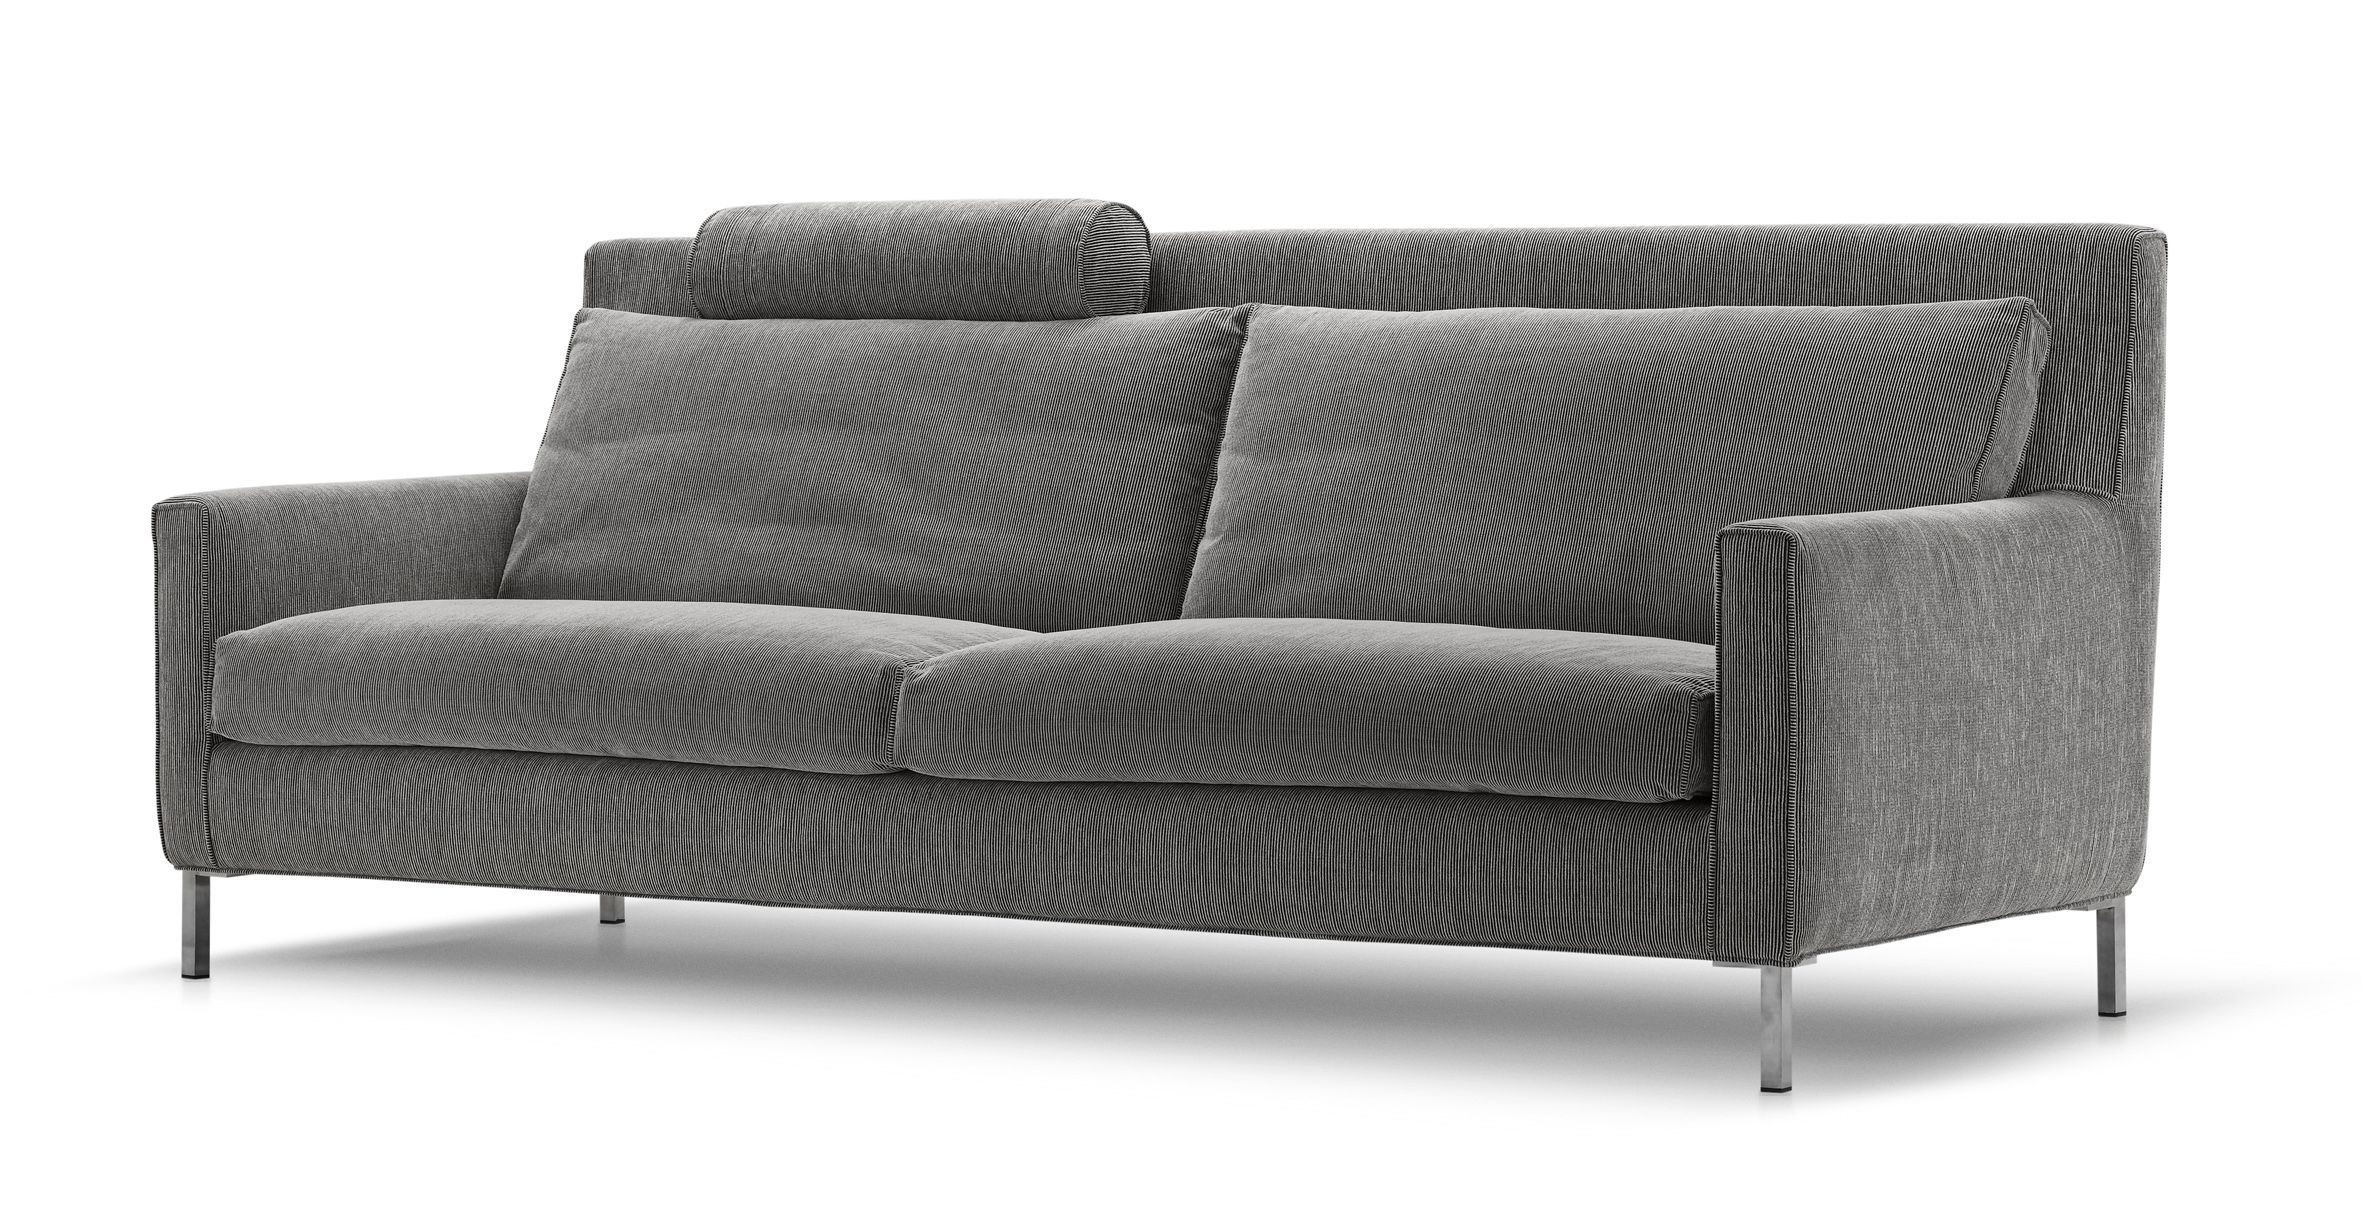 Streamline High Back Sofa, Bedroom sofa, Couch